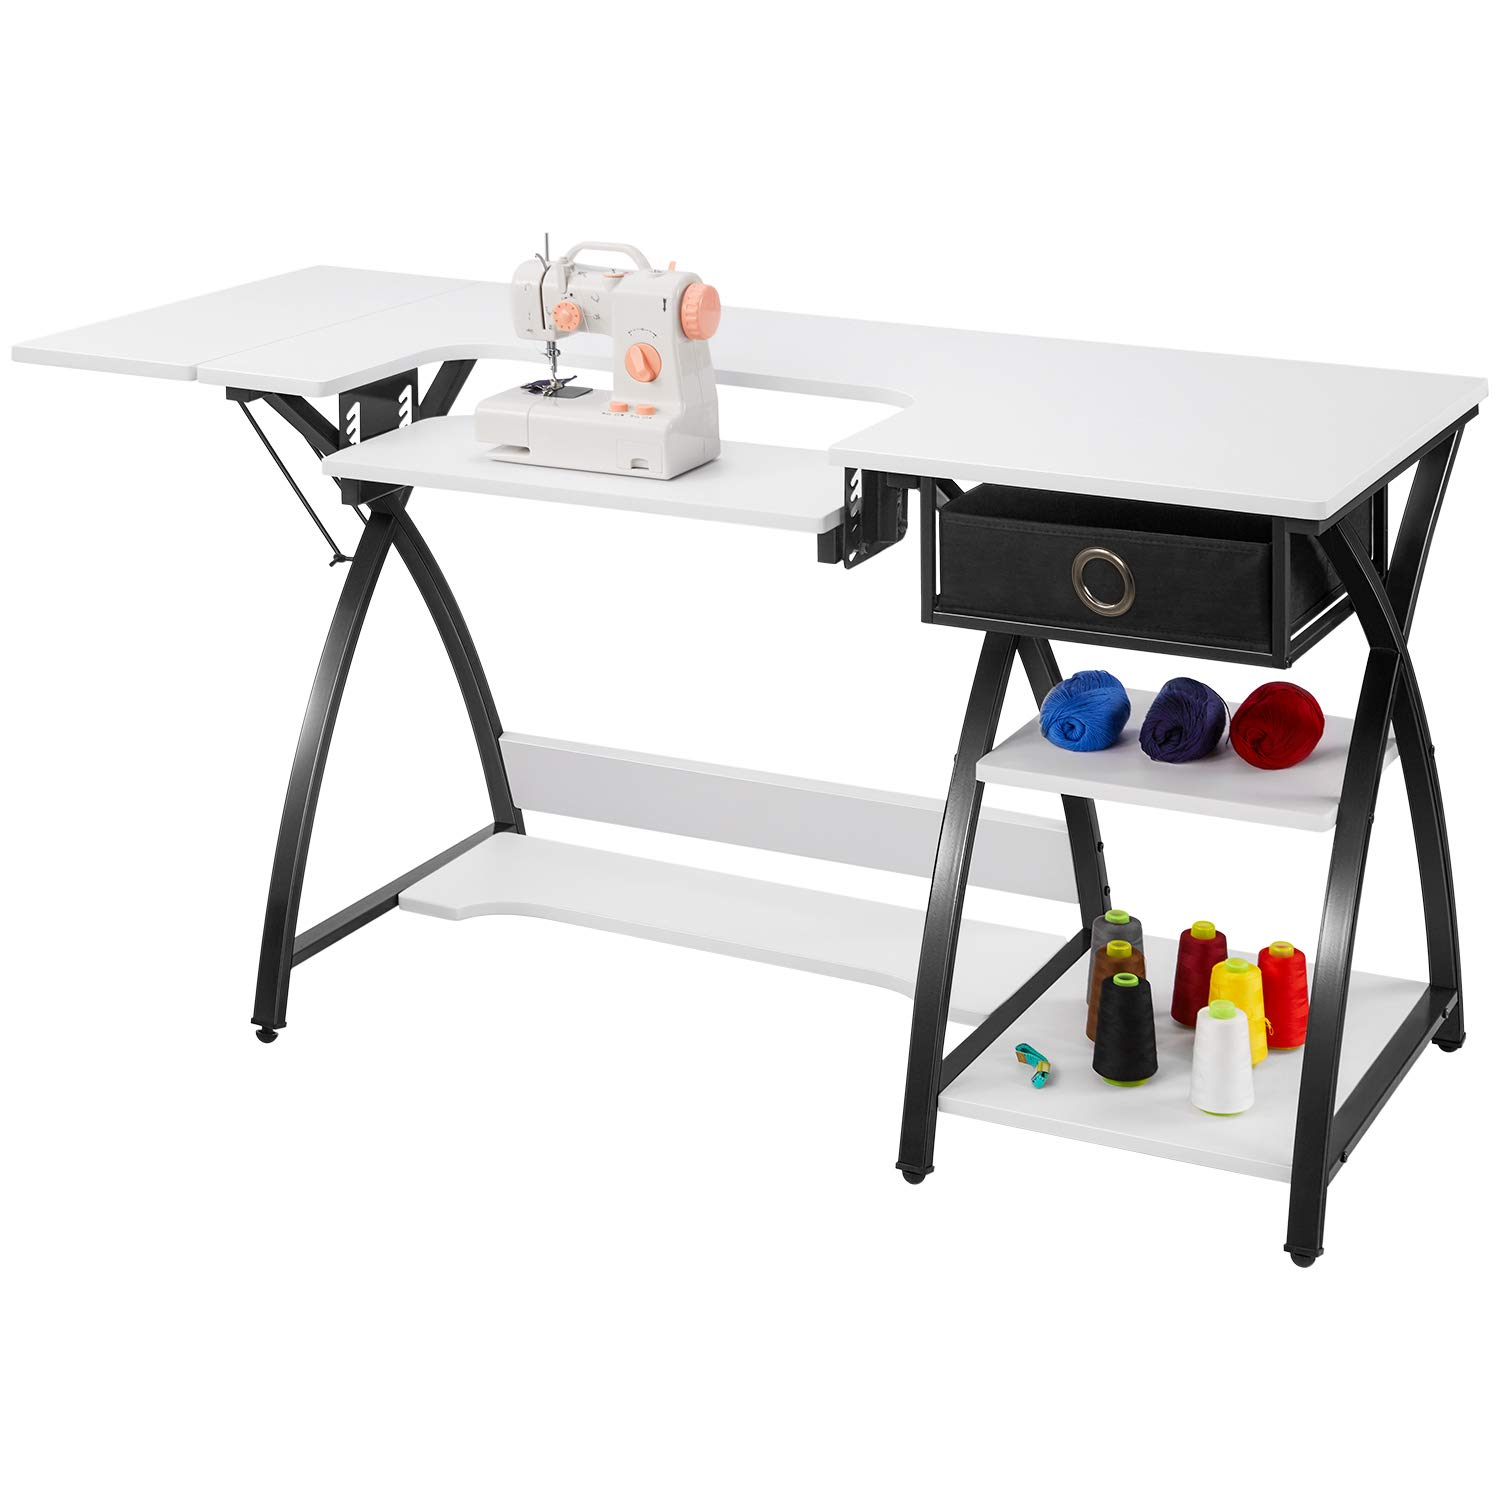 Sewing Table Adjustable Sewing Craft Table with Drawer and Shelves, Sturdy Sewing Desk Multipurpose Computer Desk,57.1×23.6×29.9 inches White by kealive